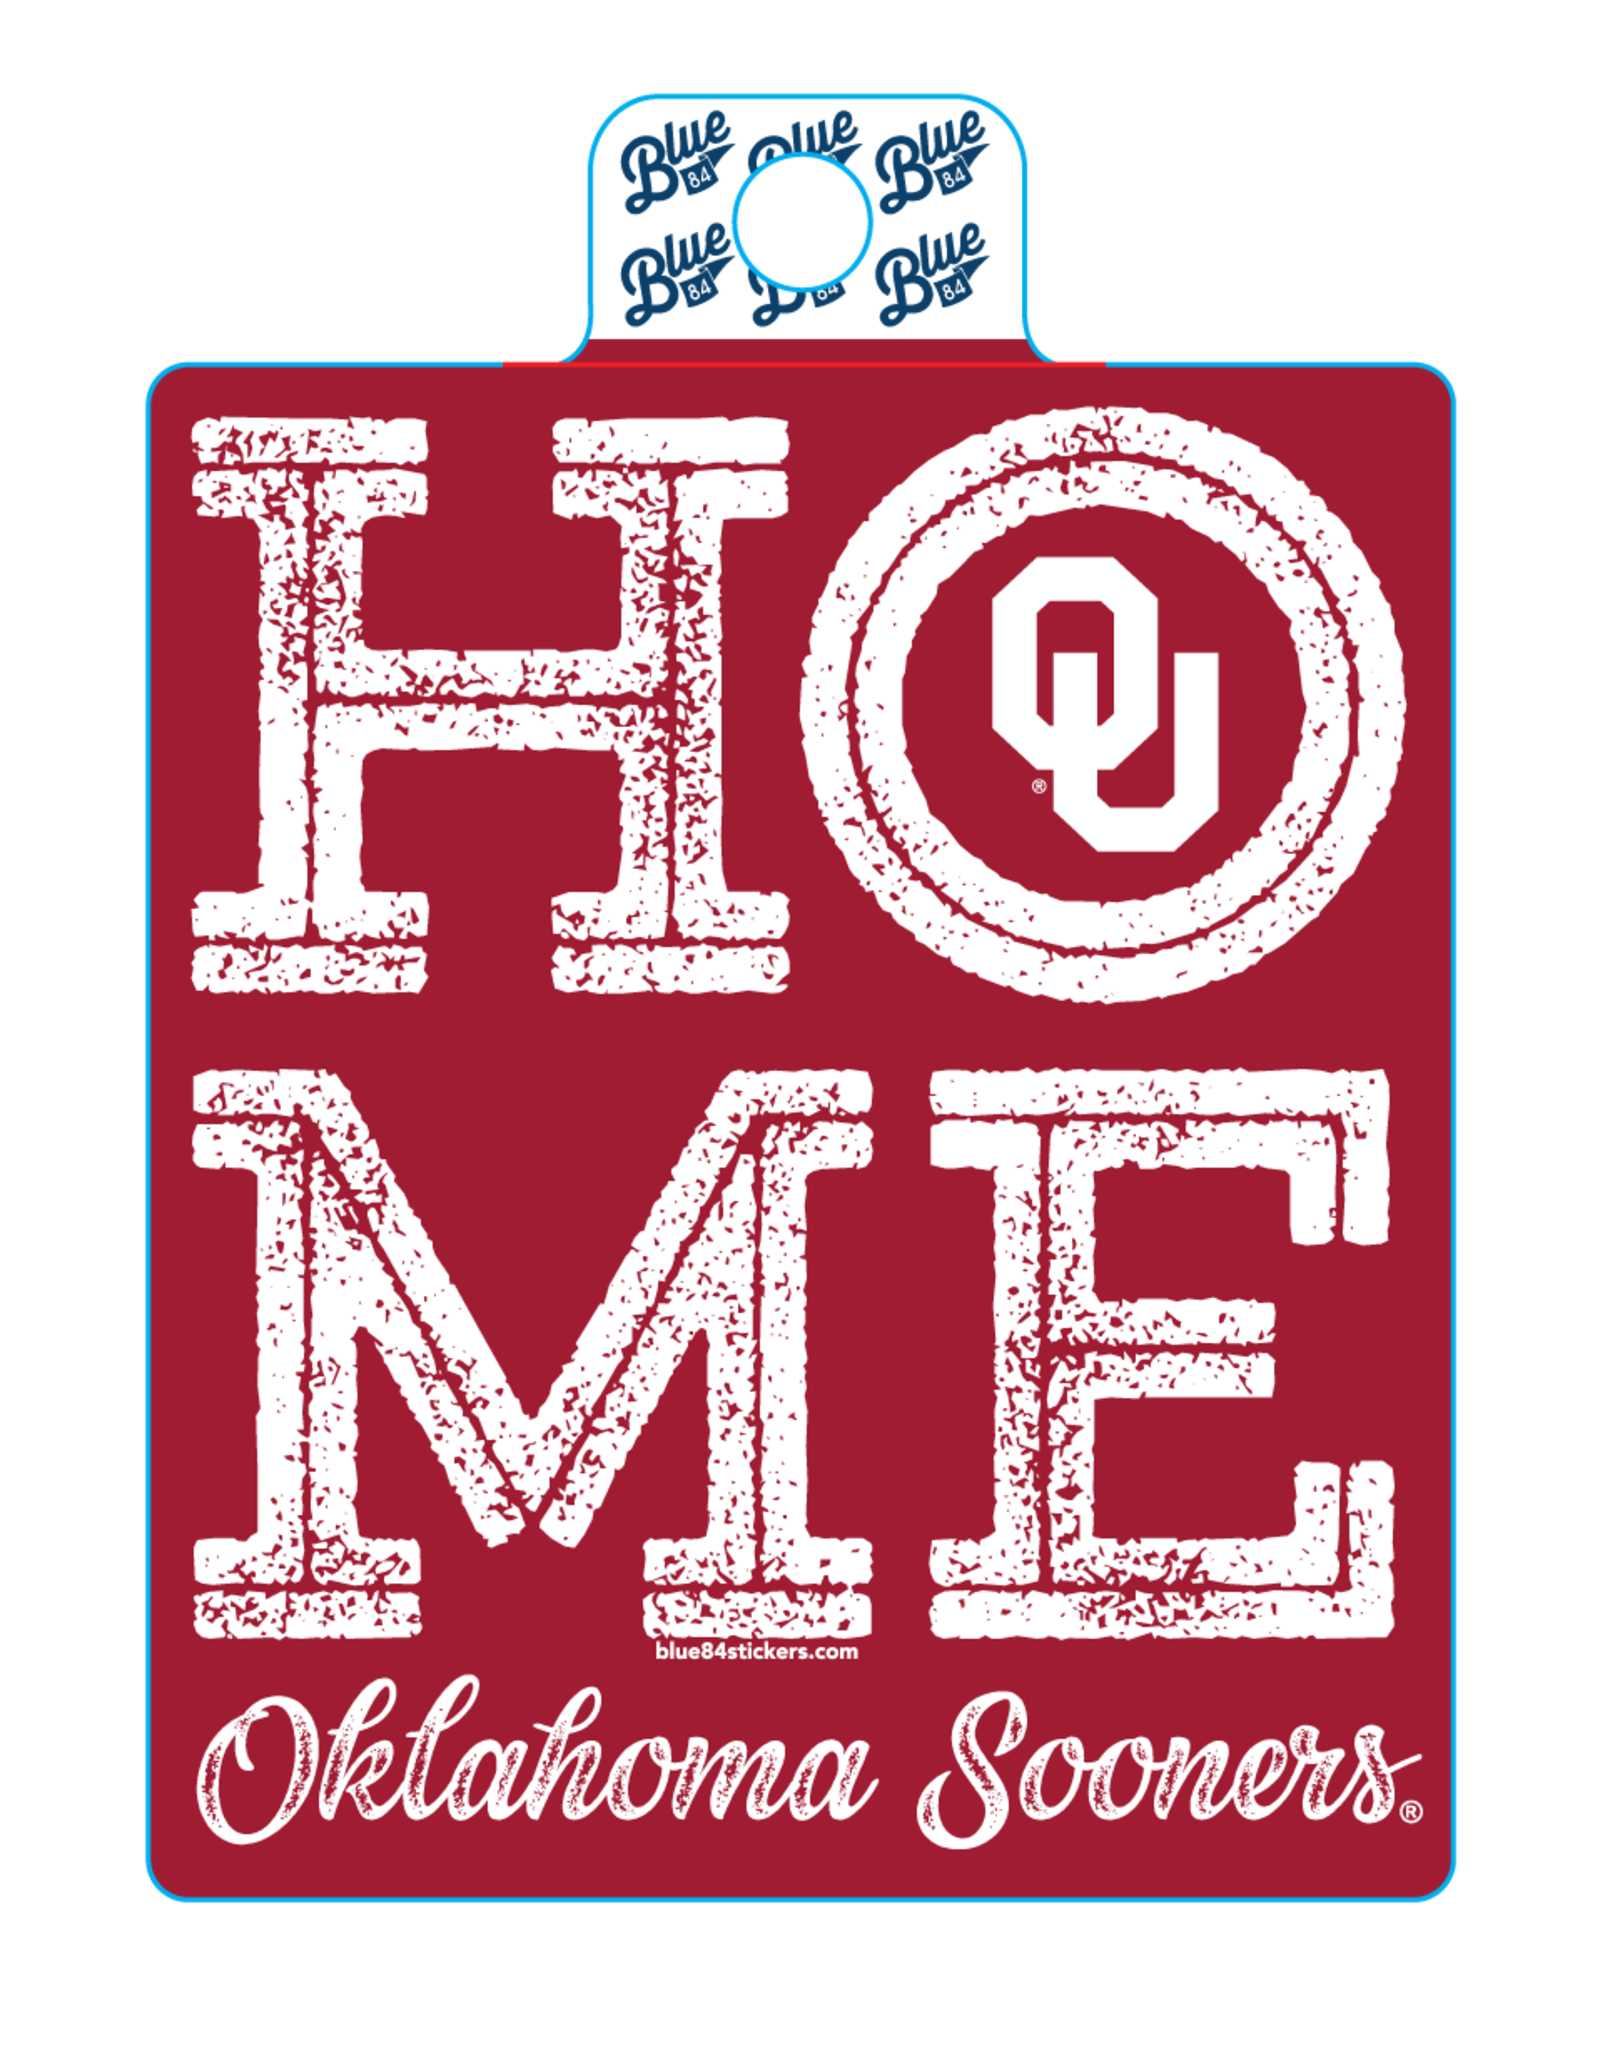 Blue 84 Blue 84 OU Home Sticker